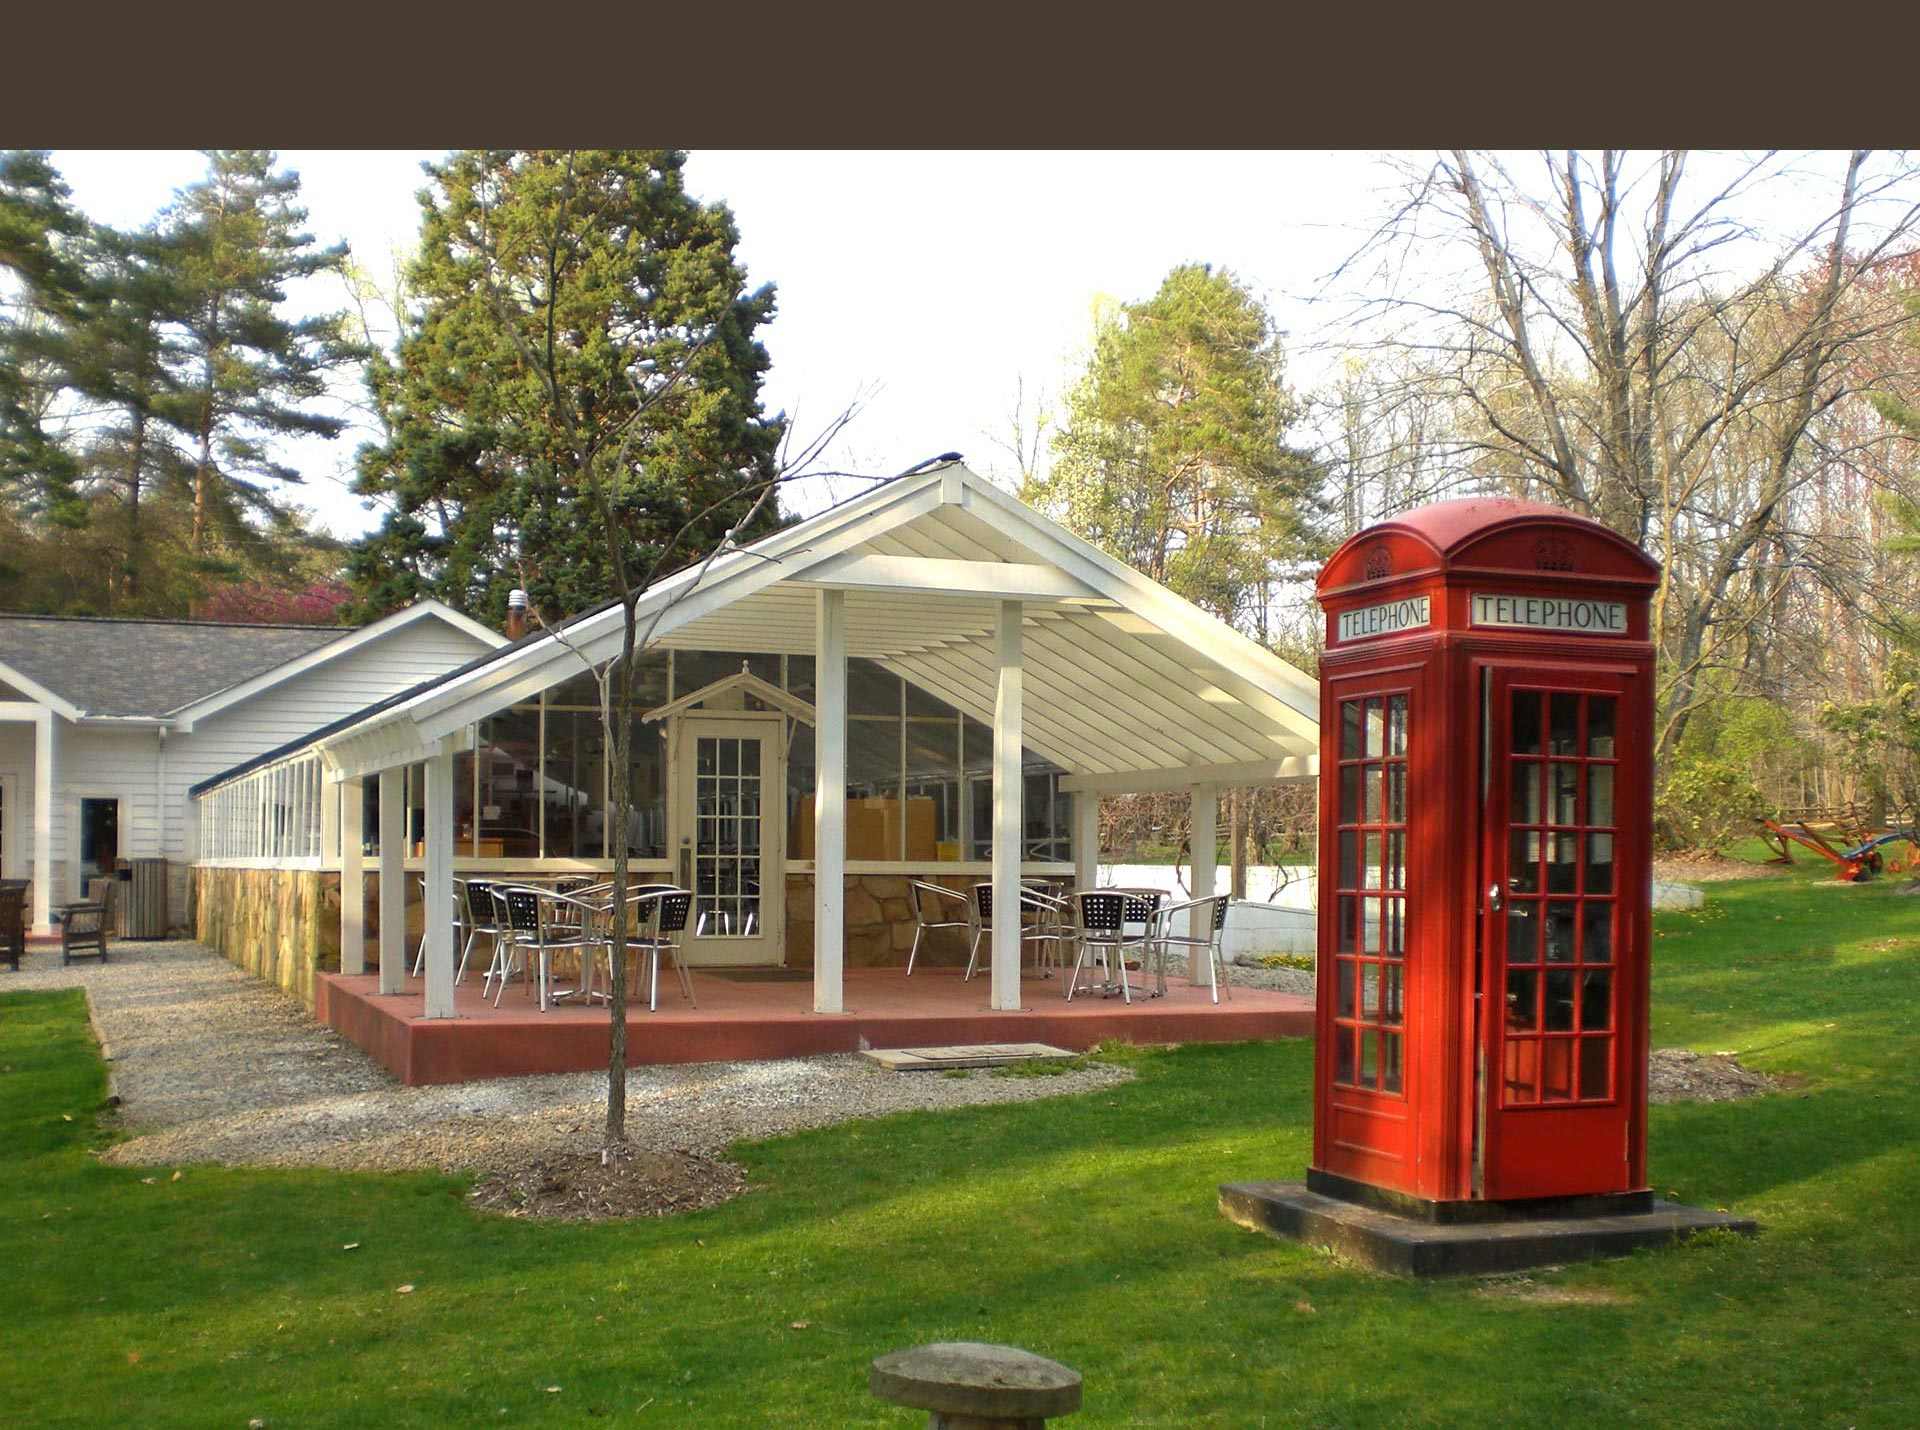 Greenhouse + Phone Booth